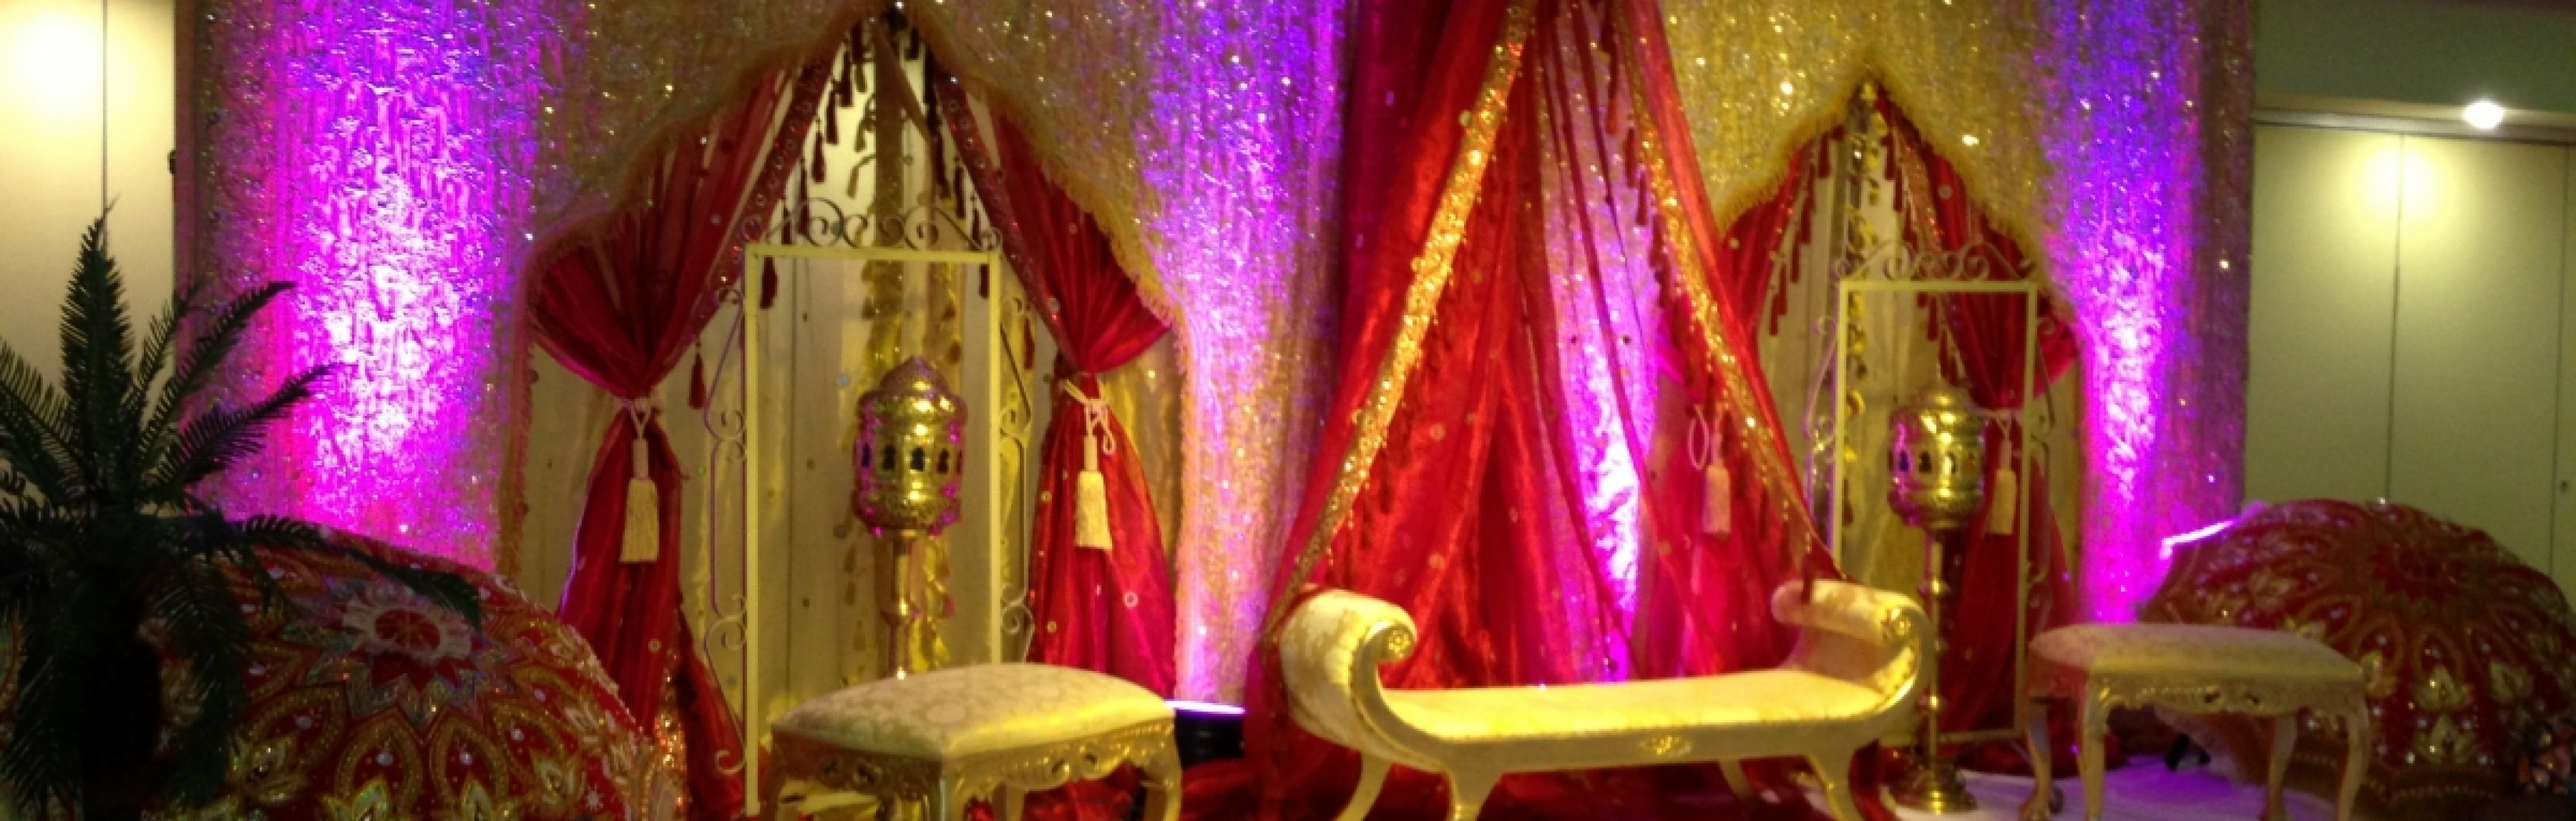 Hiring the professional Asian wedding services for your big day